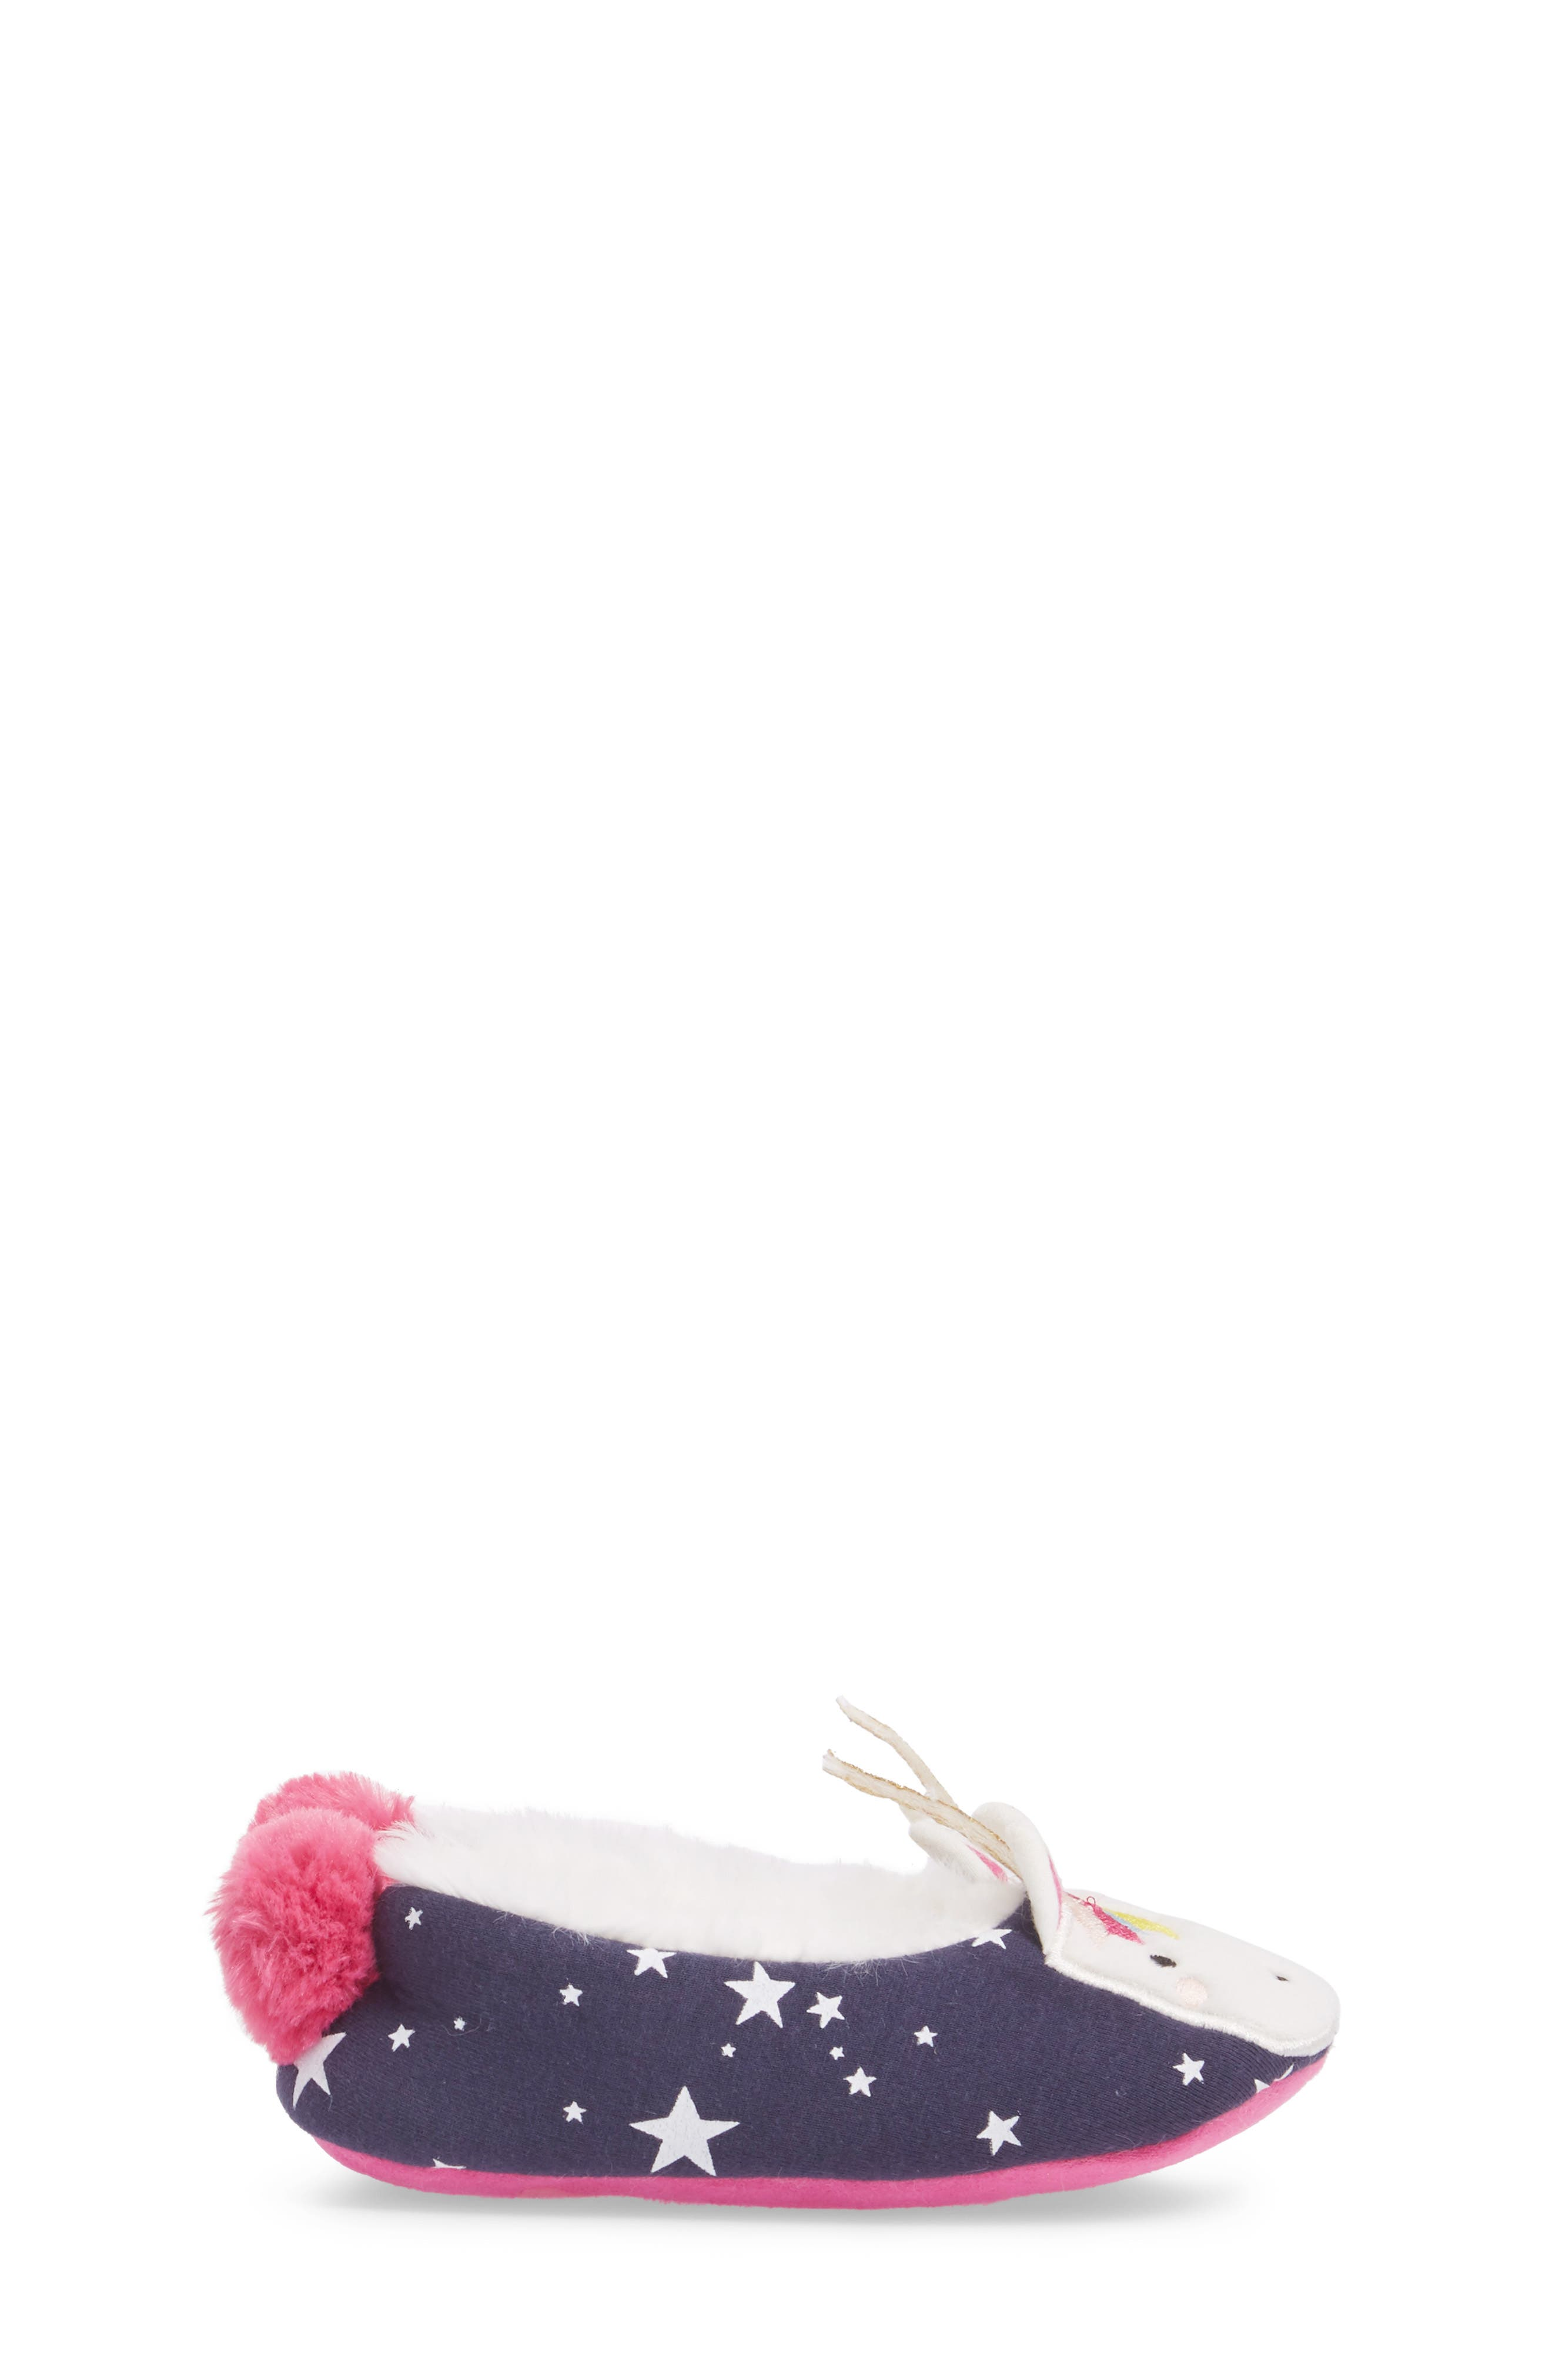 Faux Fur Character Slipper,                             Alternate thumbnail 3, color,                             FRENCH NAVY UNICORN